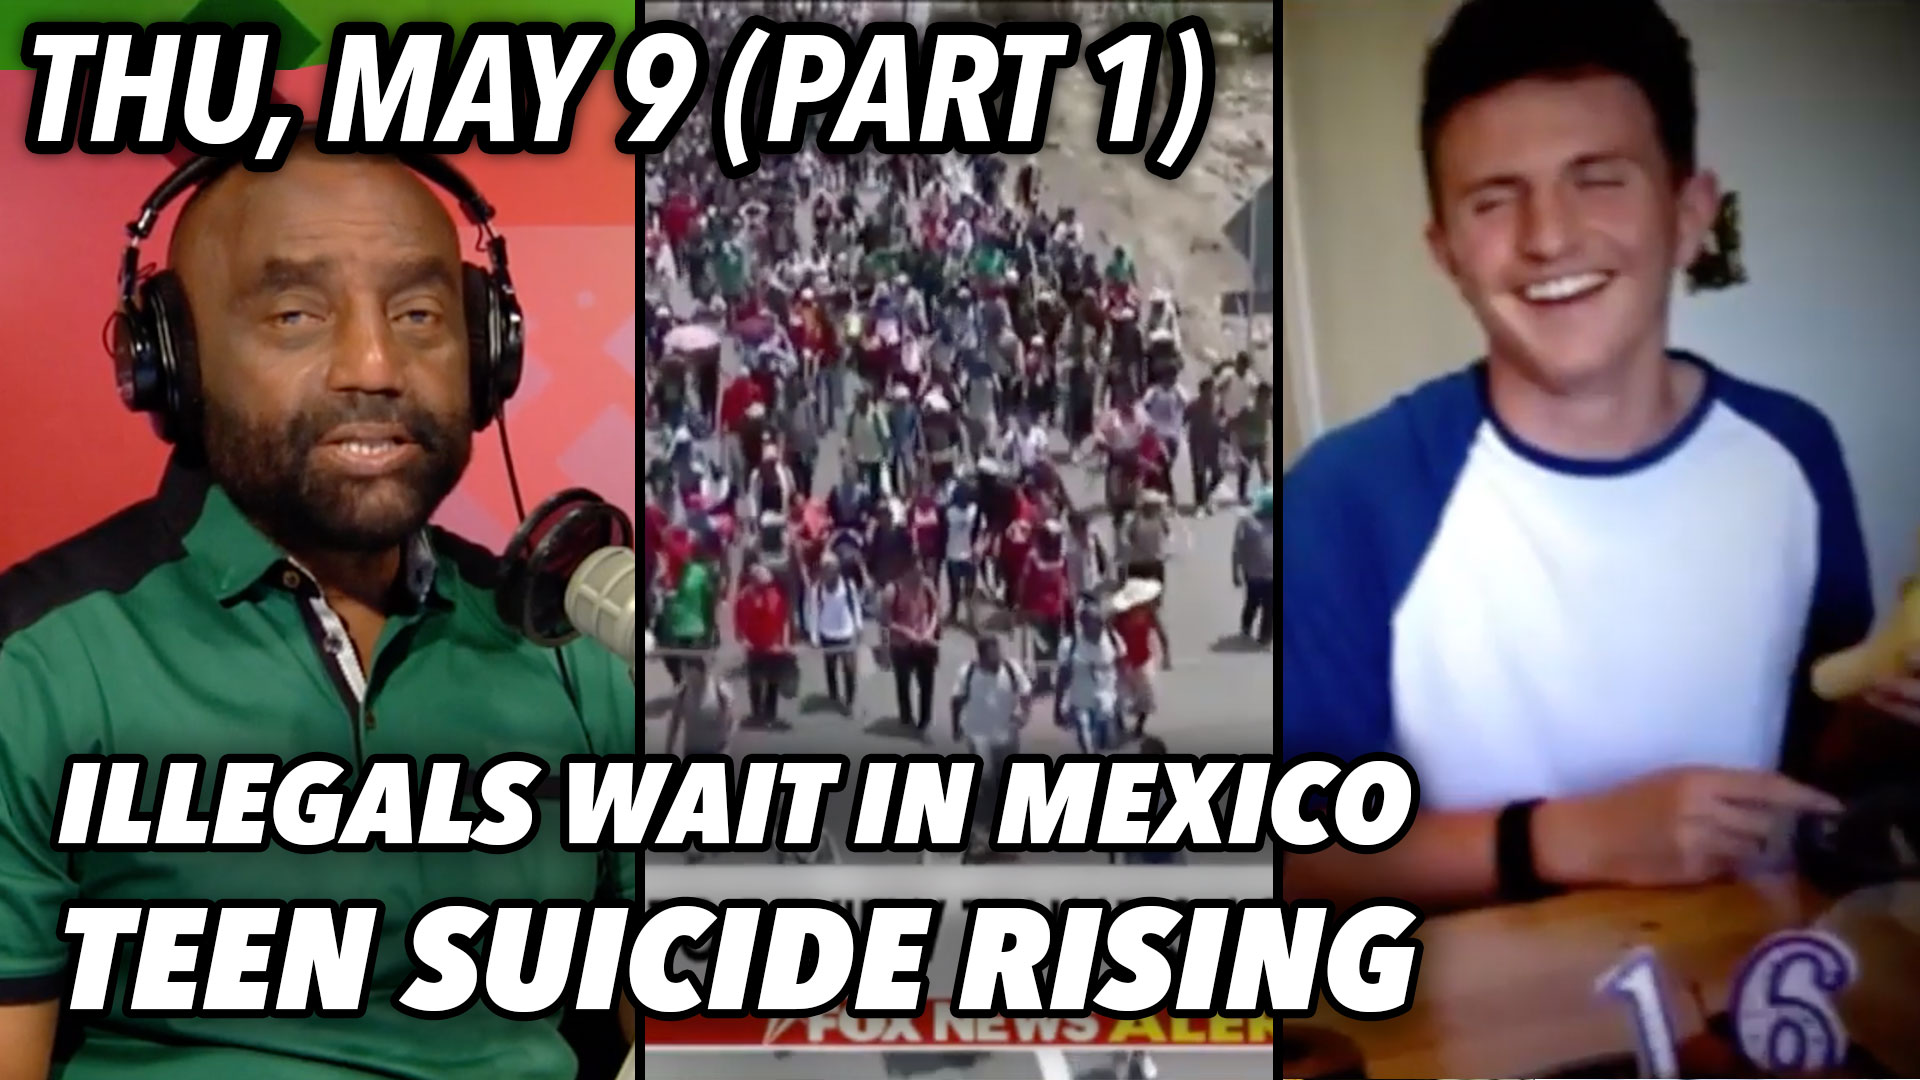 FULL-SHOW-thu-may-9-part-1-illegals-suicide.jpg